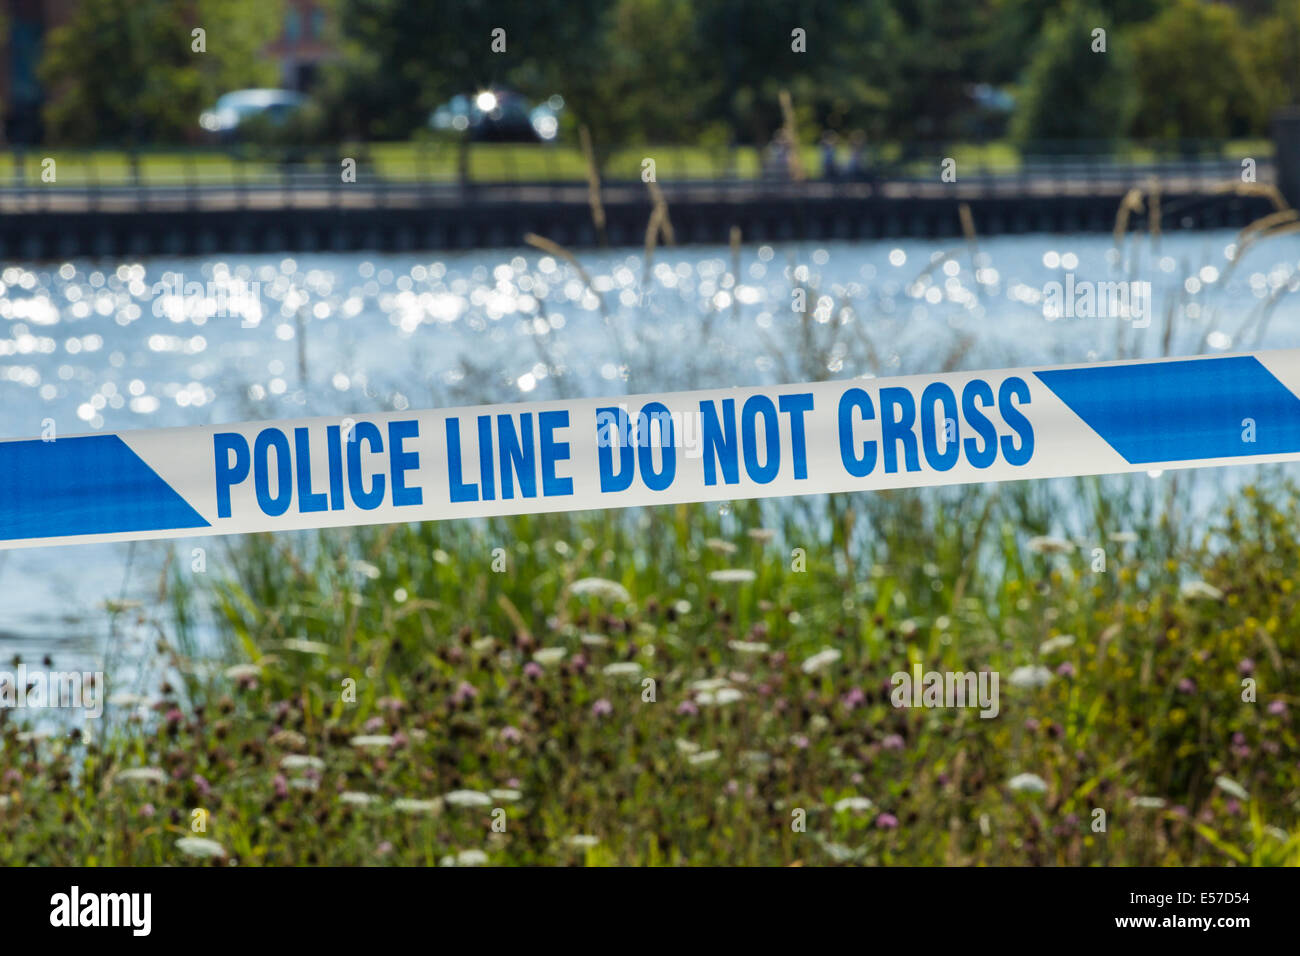 Stockton on Tees, England, UK. 22nd July, 2014. Police search continues for missing swimmer, named as 19-year-old - Stock Image